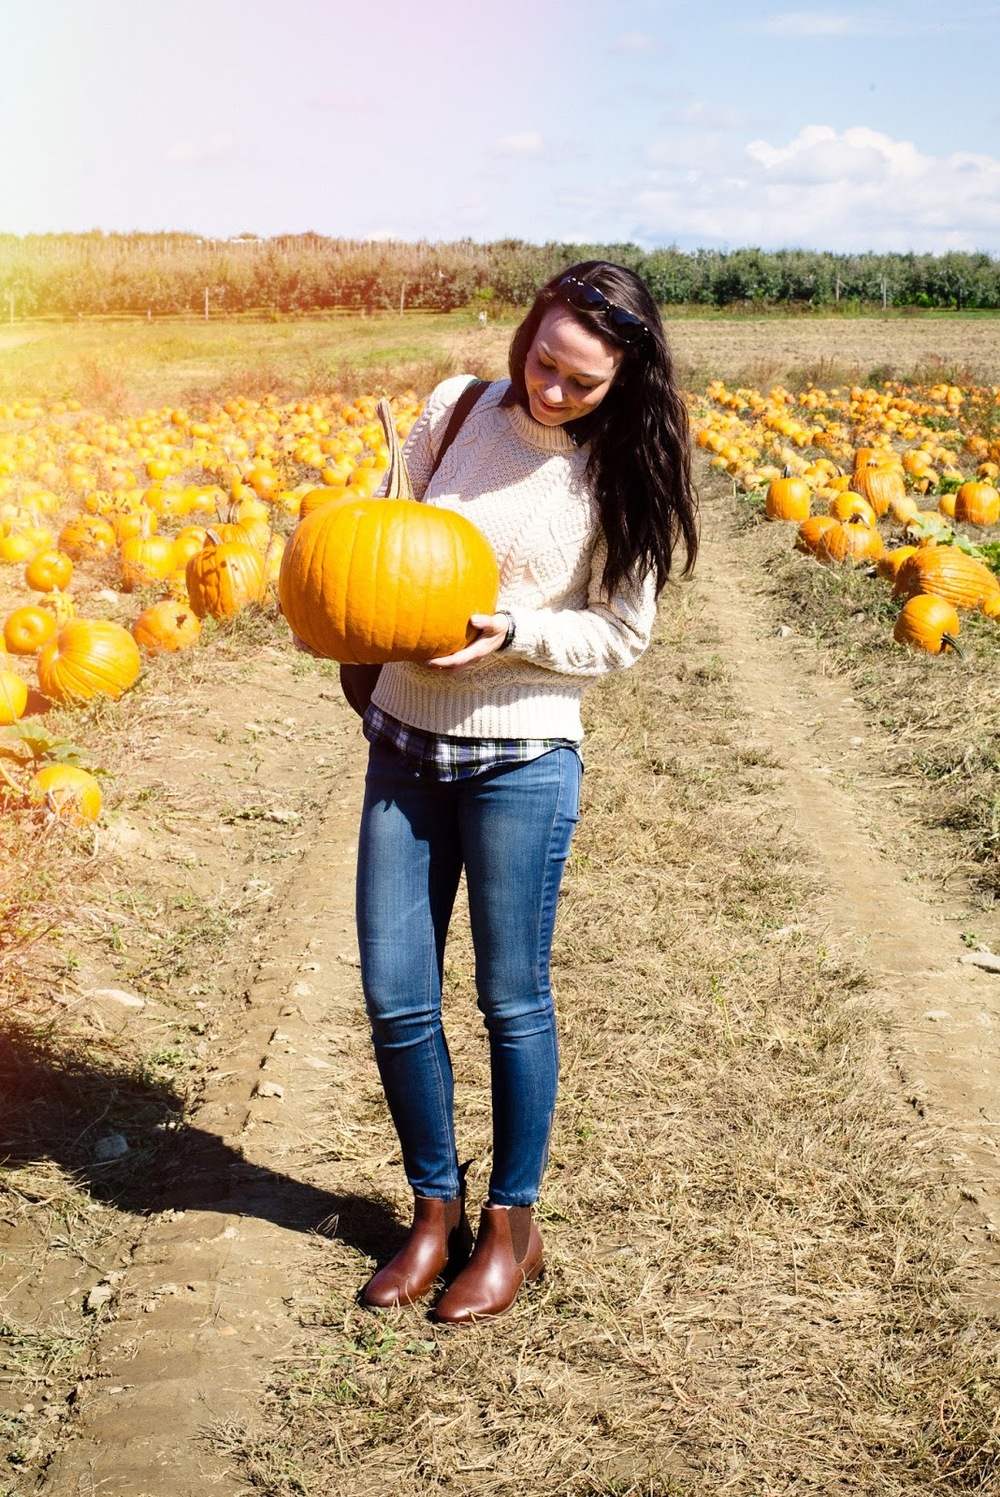 Carly A. Heitlinger Fishkill Farms Hudson Valley New York NYC Hush Hush Tips Pumpkin Picking.jpg